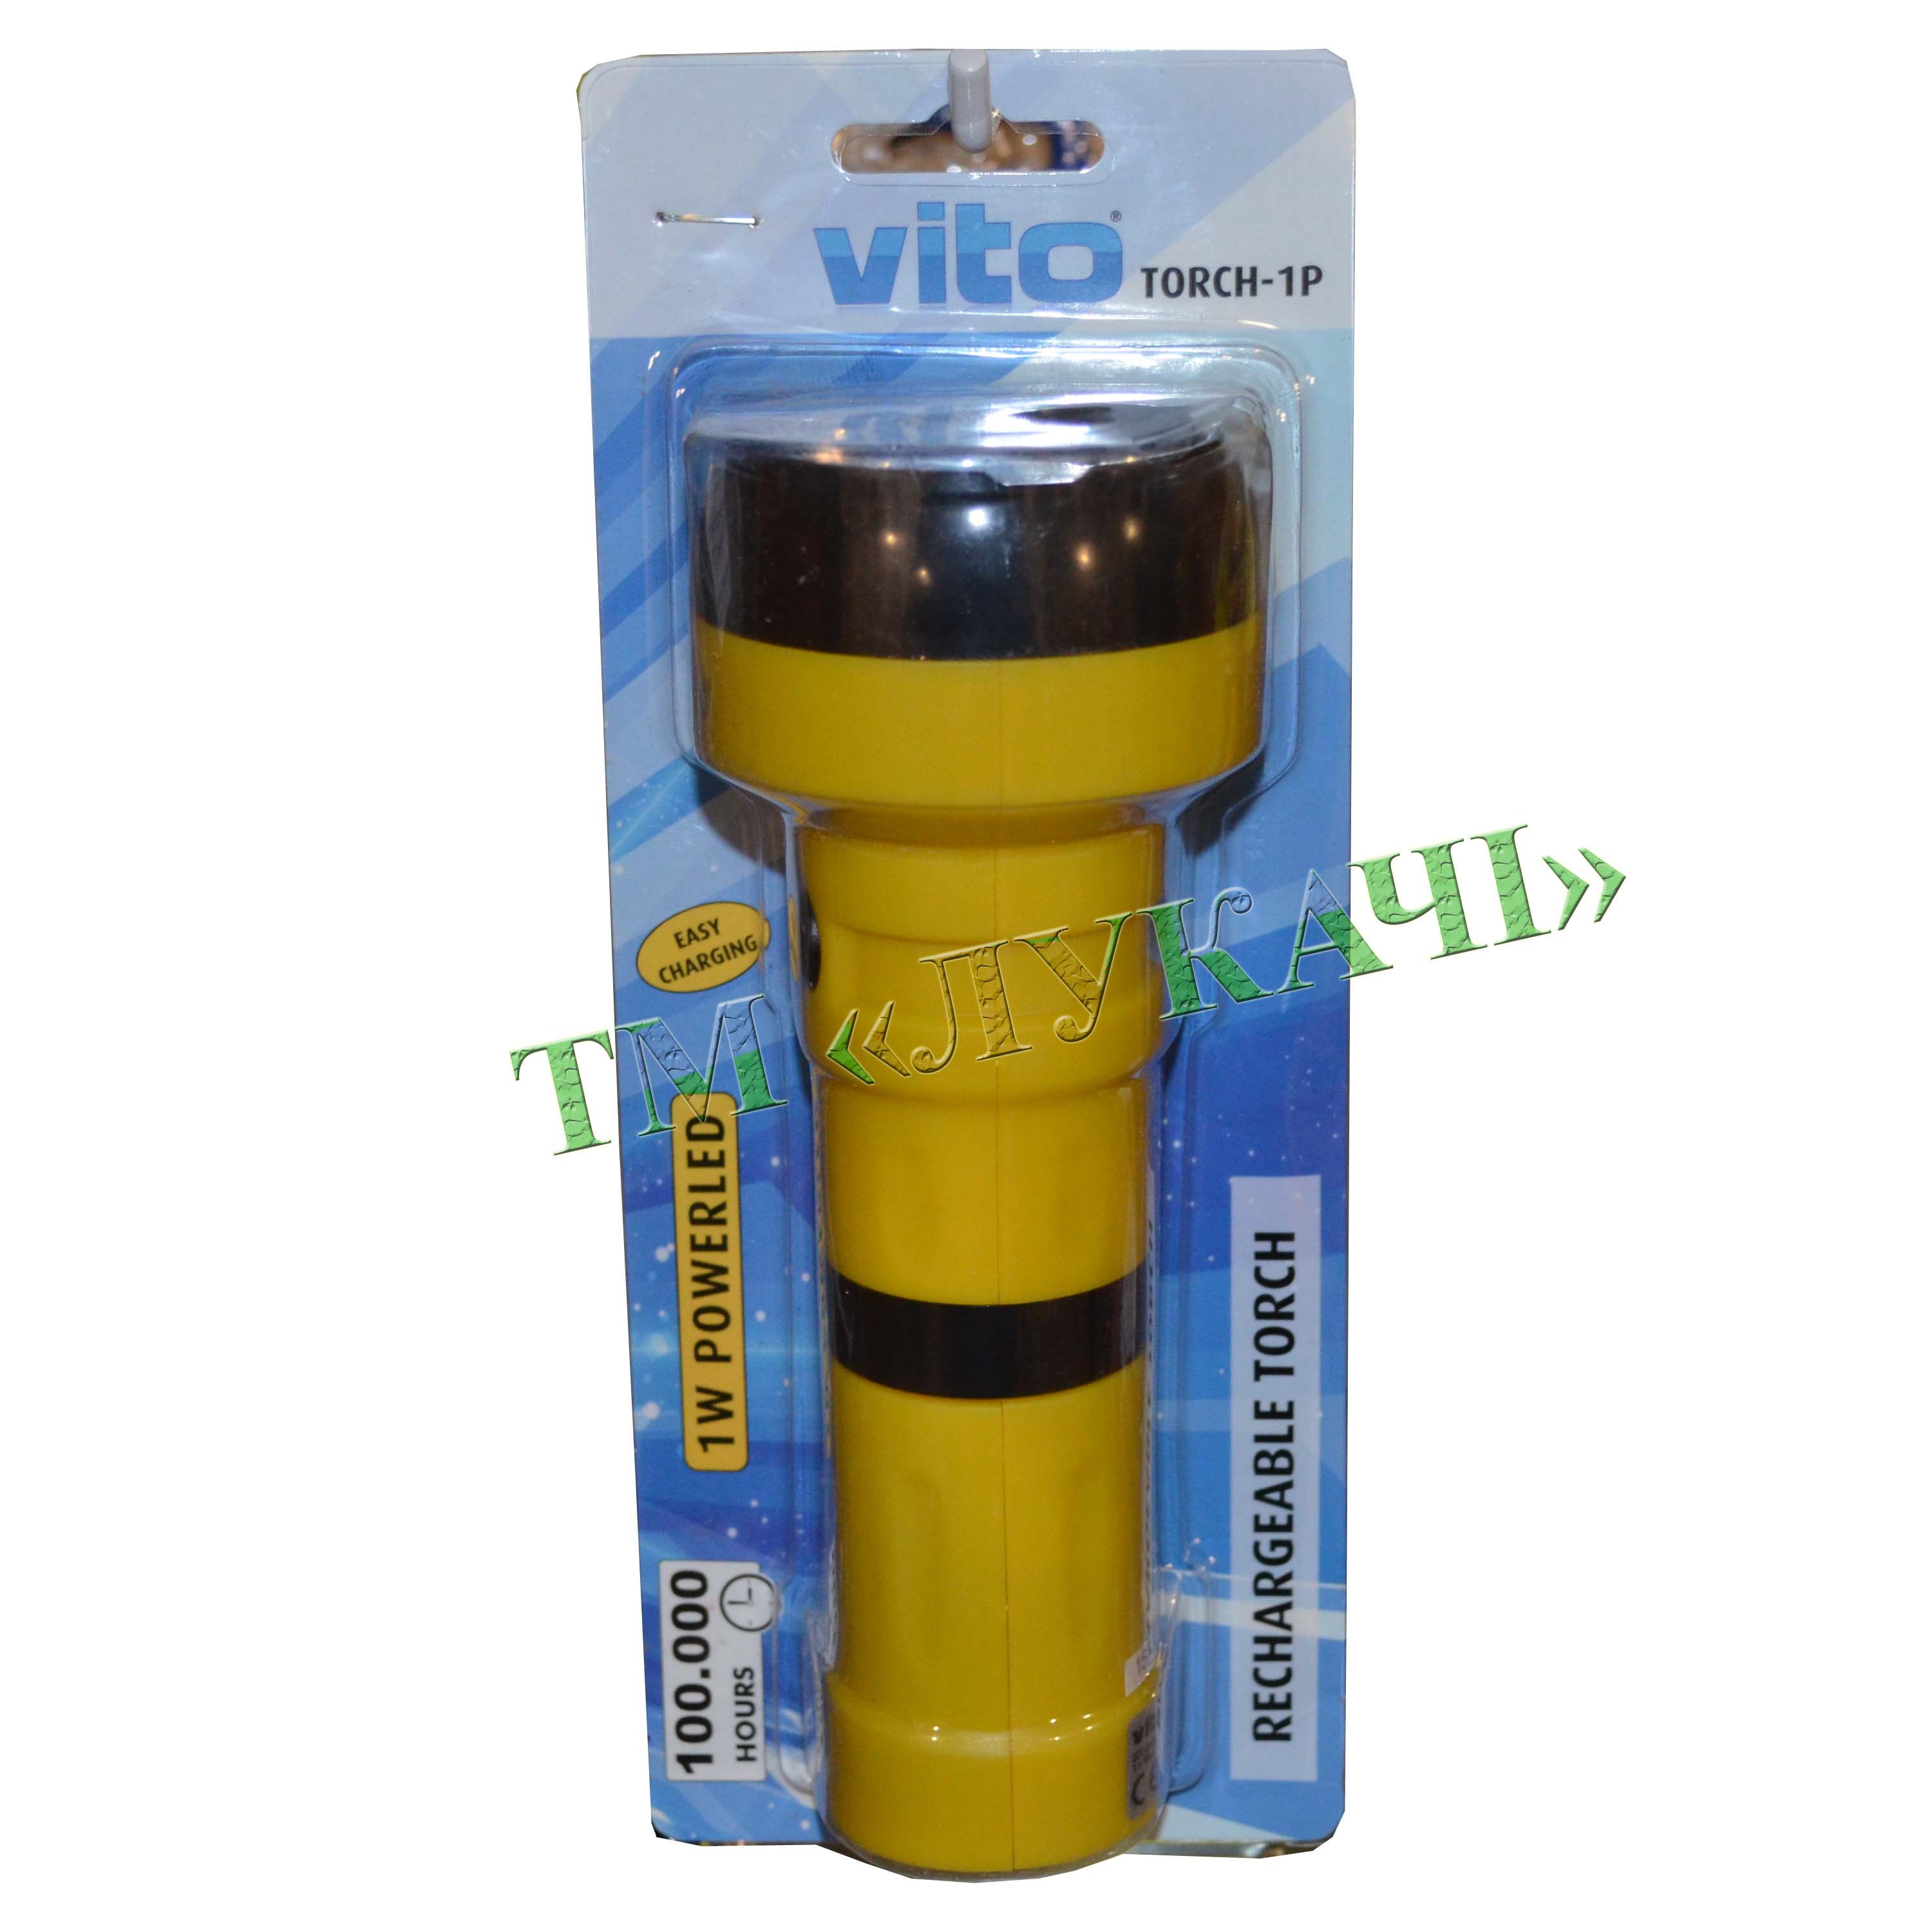 Фонар  VITO Torch-1P 1 PowerLed 4V 400mAh 80Lm4год. жовт. 5000260